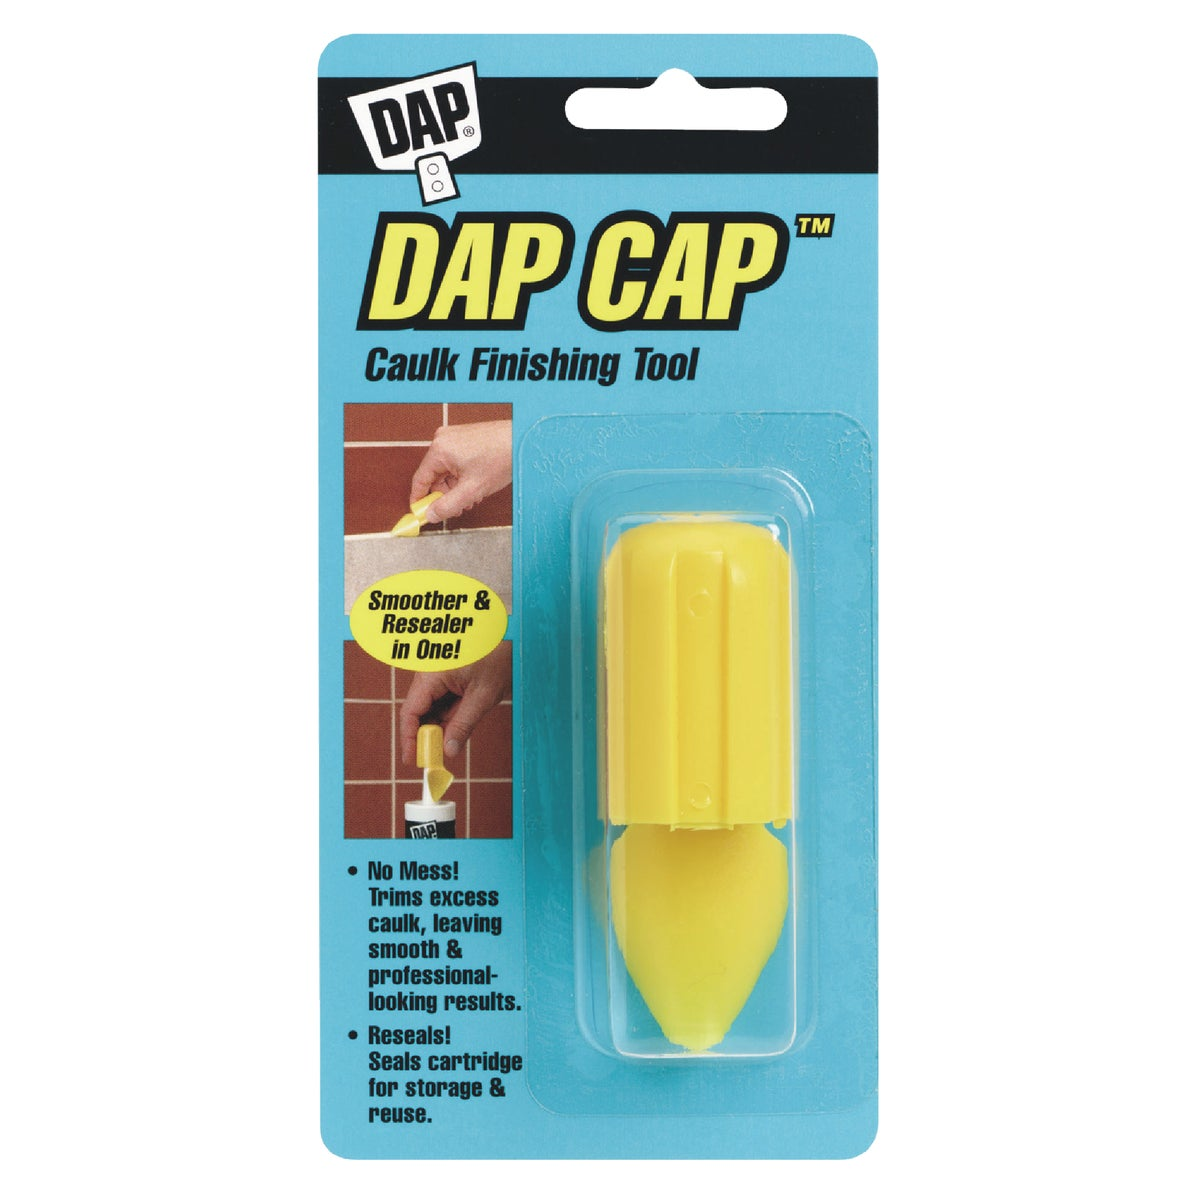 DAP CAP CAULKING TOOL - 18570 by Dap Inc